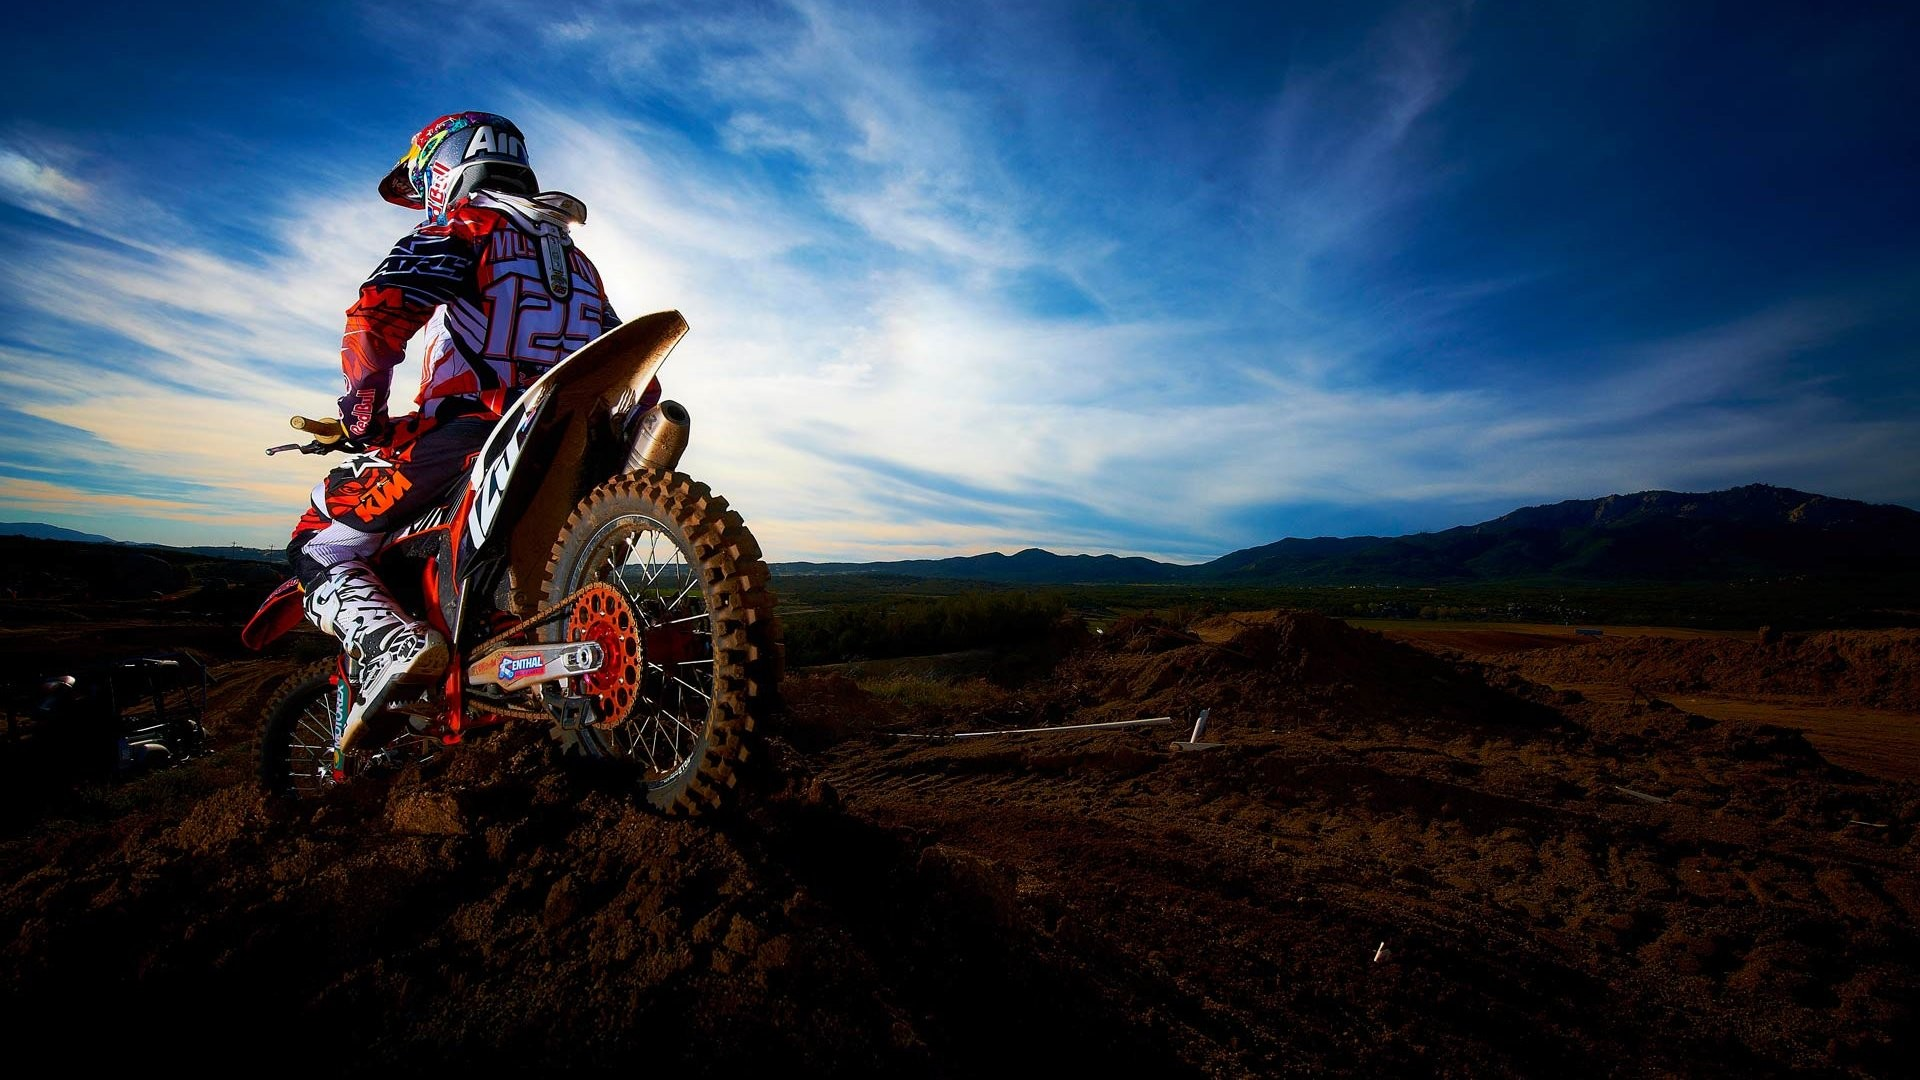 Wonderful Motocross Wallpaper 41683